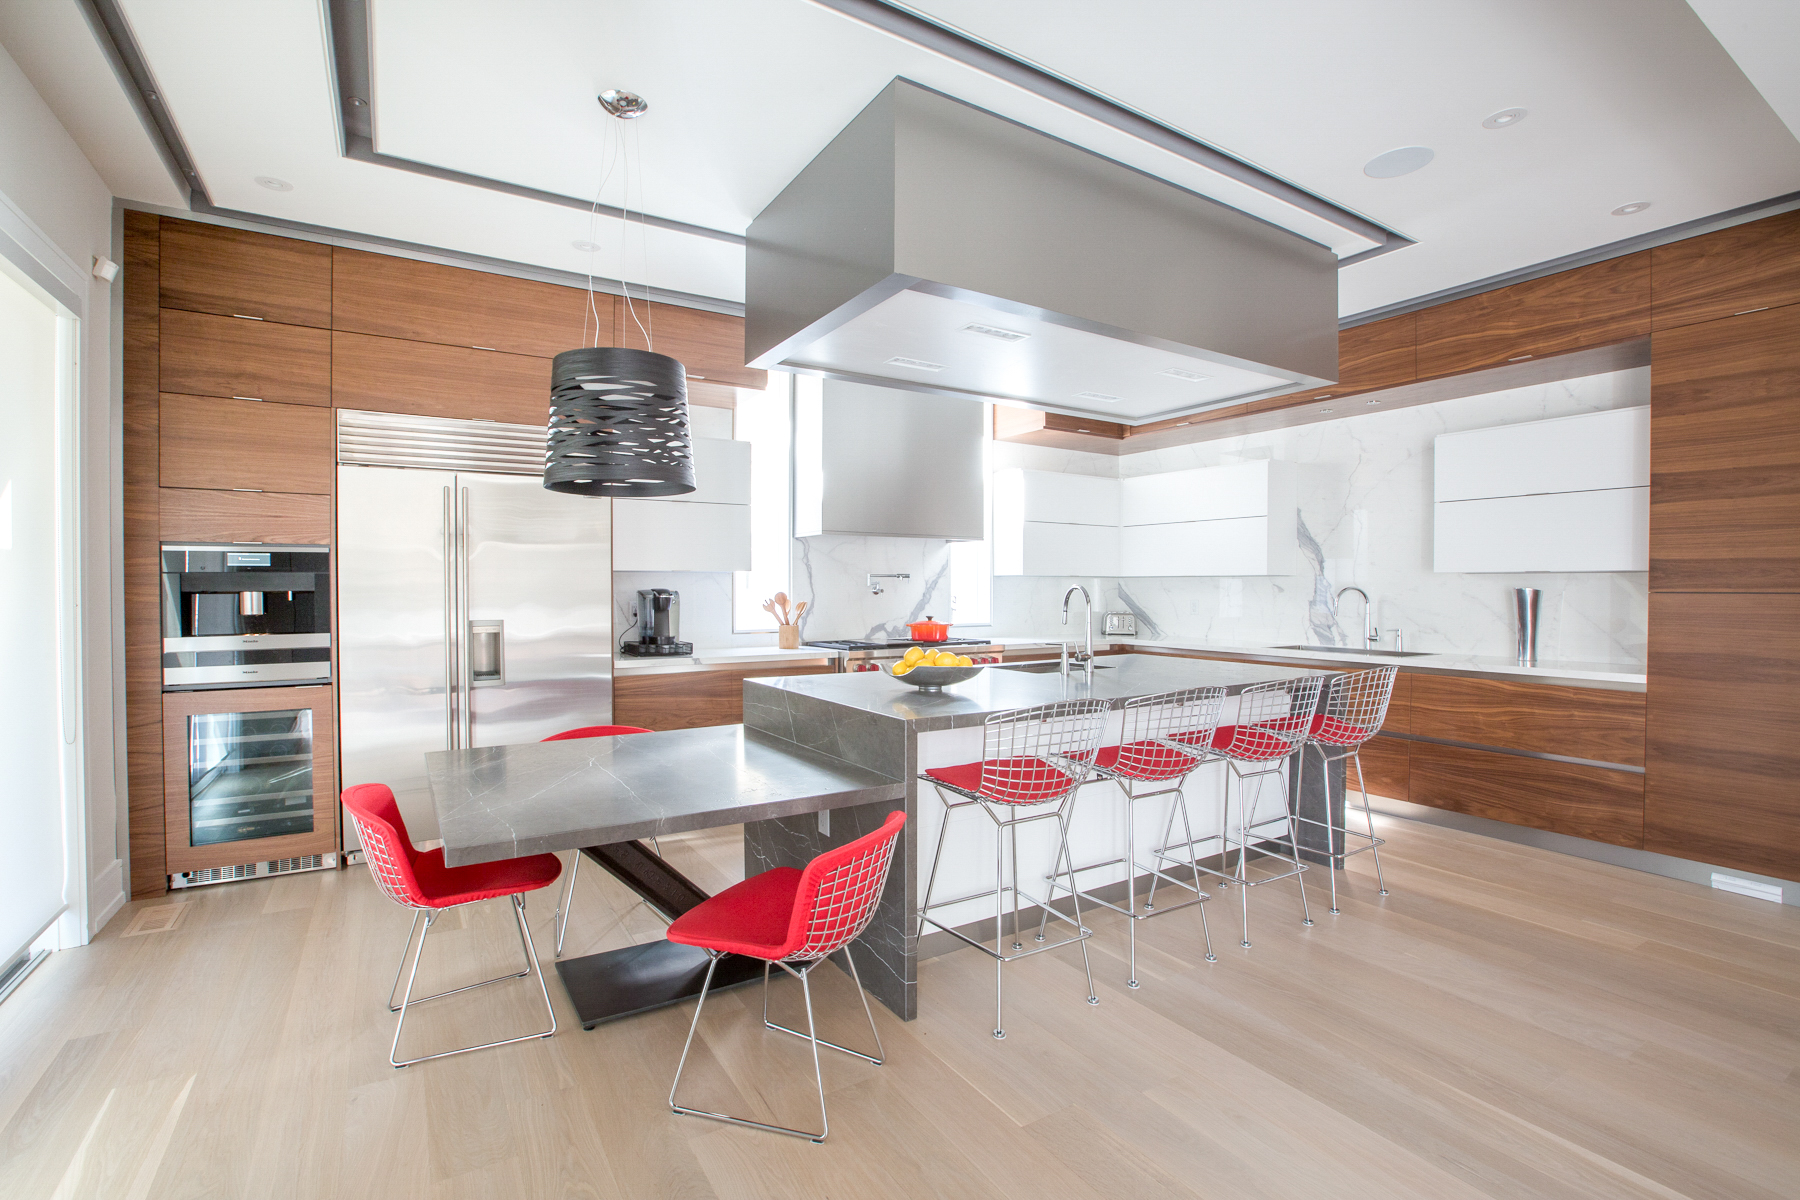 NIICO Kitchen Island with red bar stools